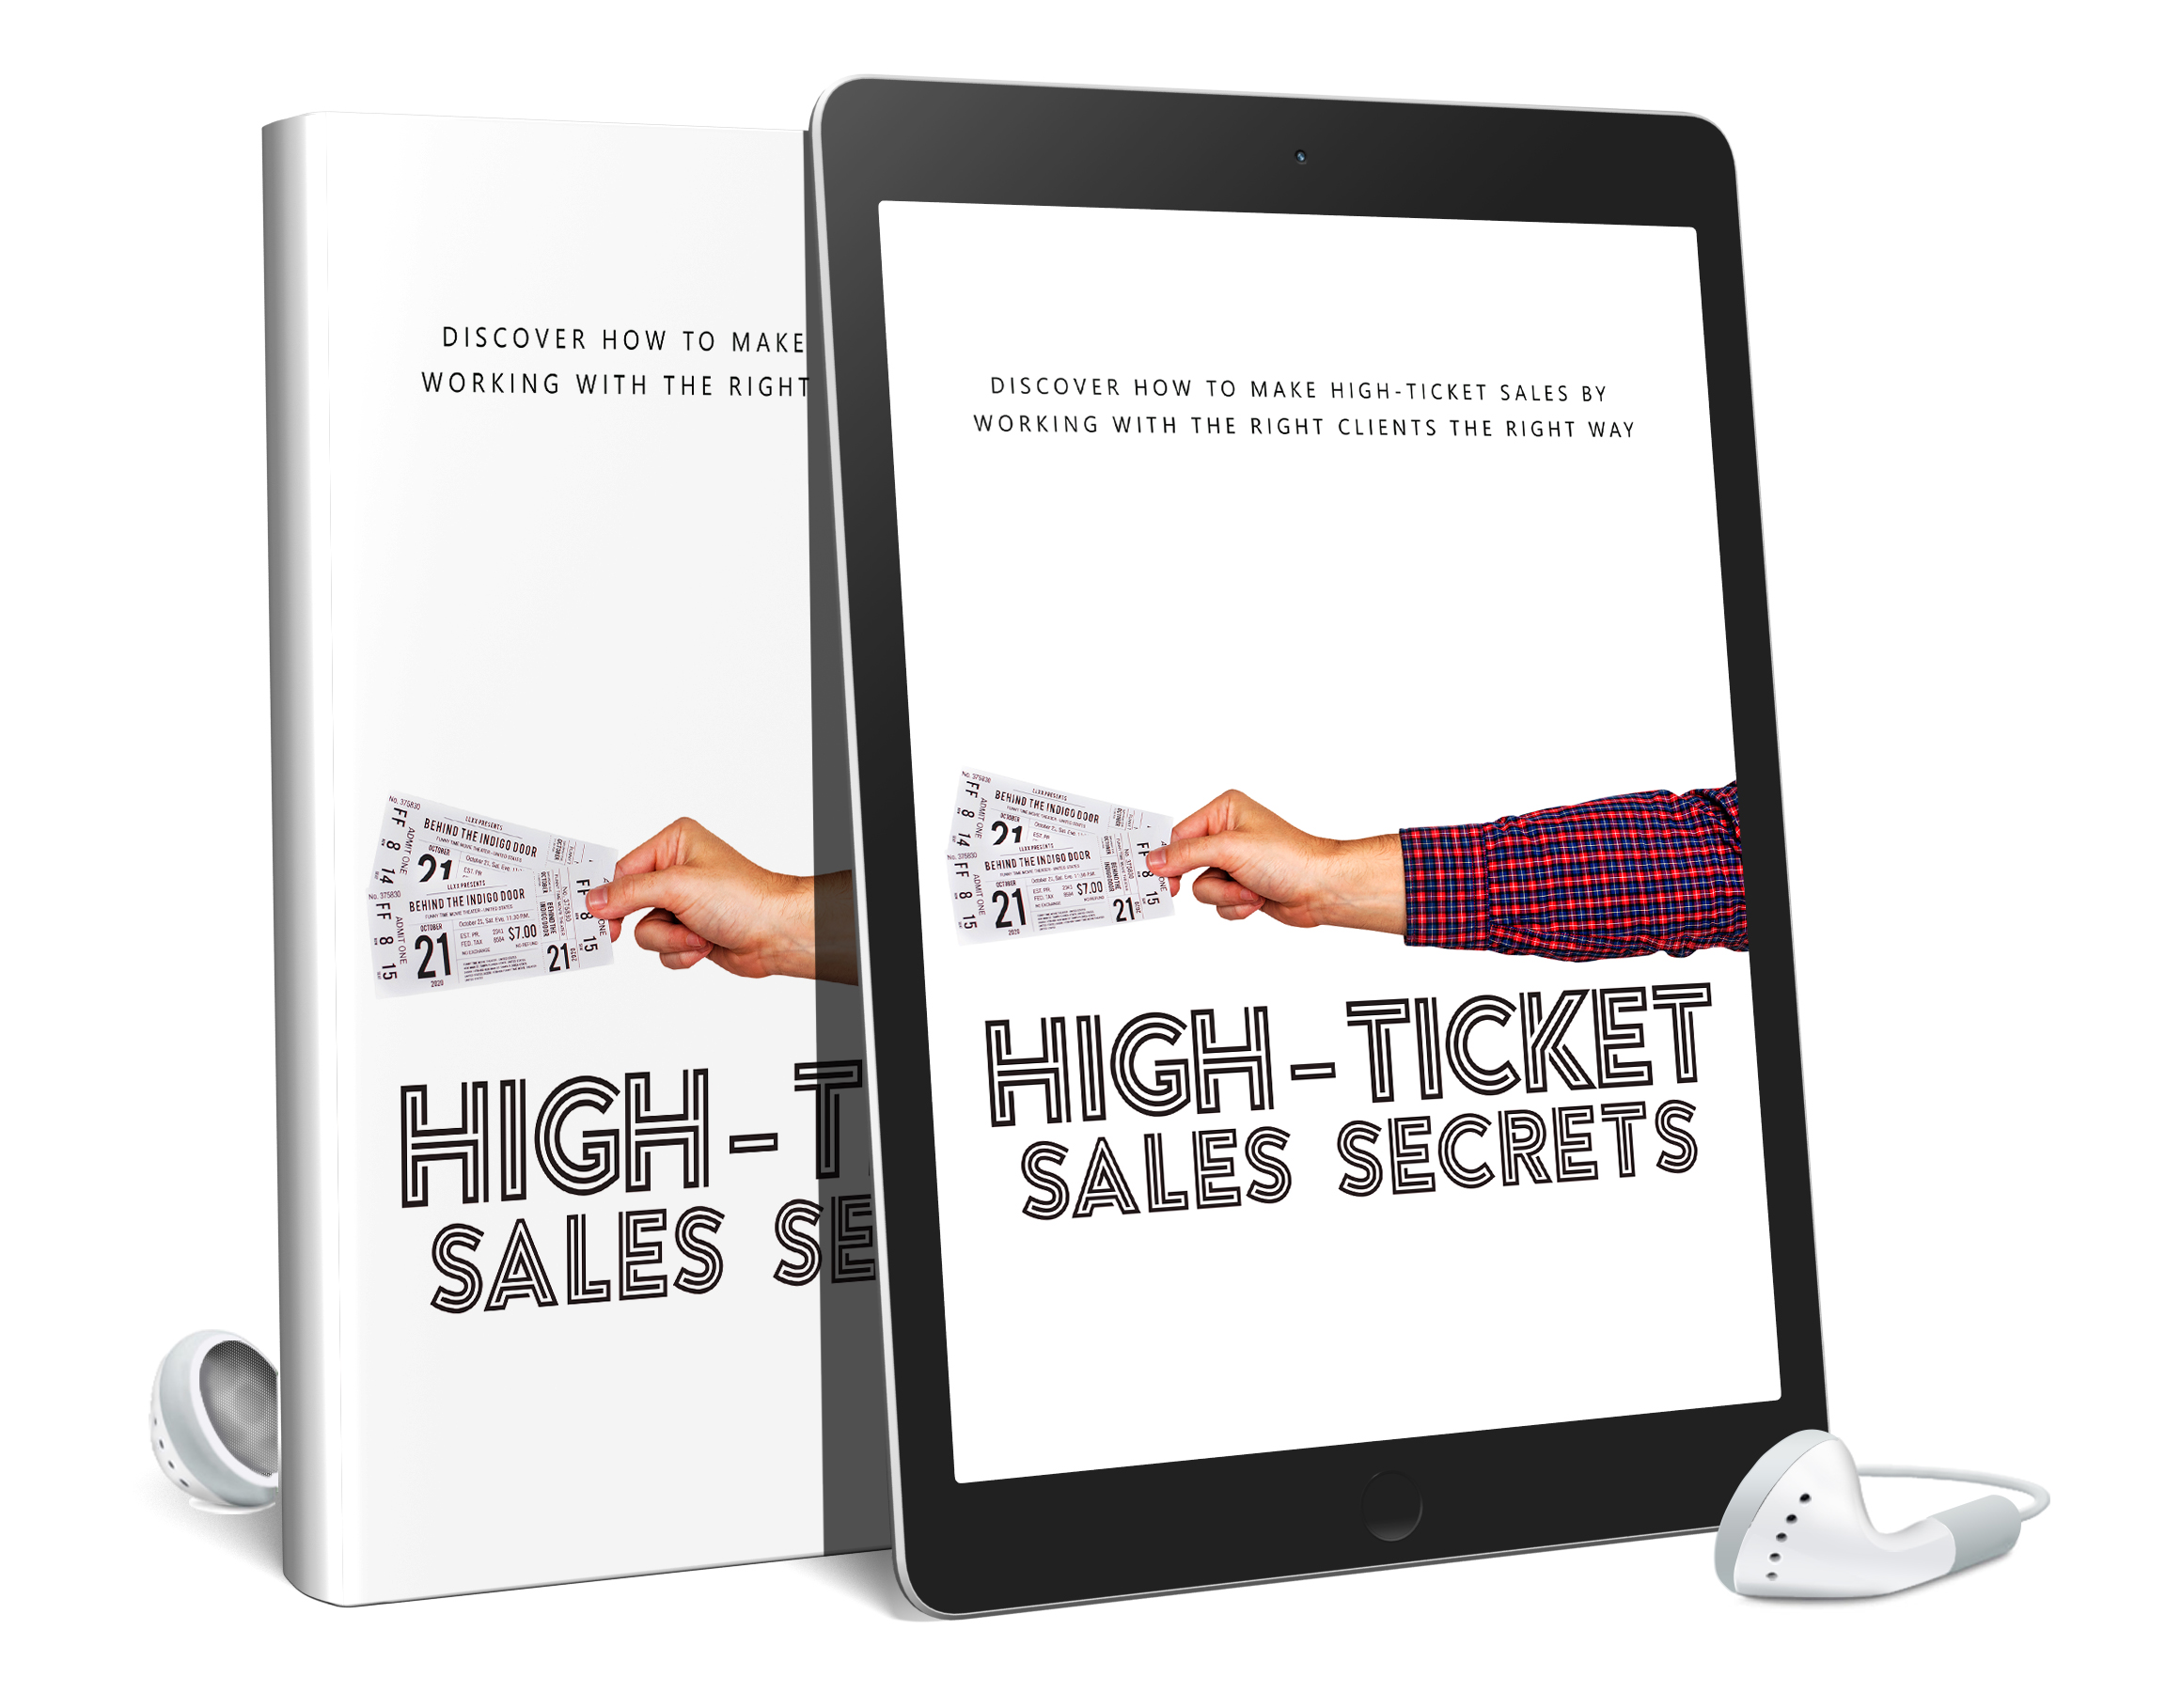 High Ticket Sales Secrets AudioBook and Ebook